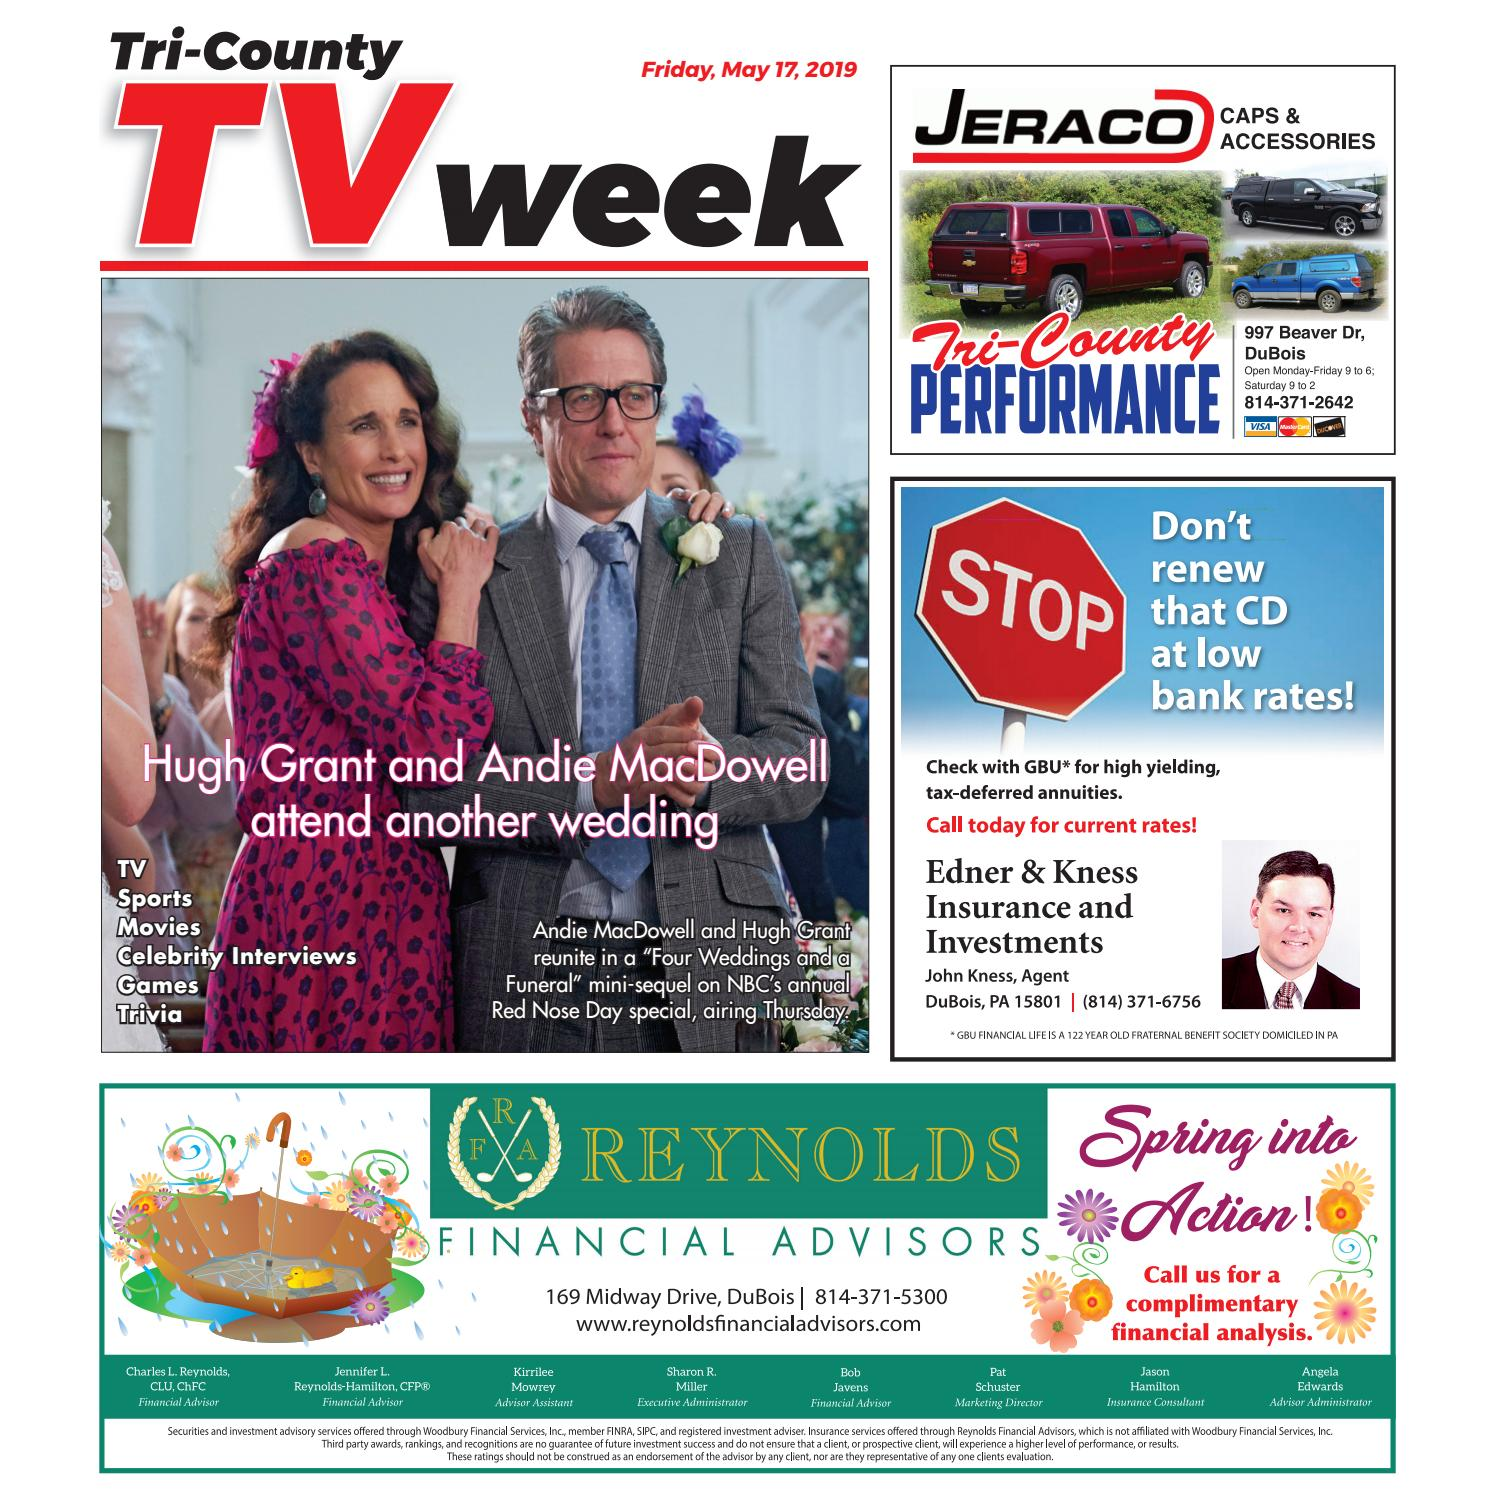 TV Week, Friday, May 17, 2019 by Tri-County TV Week - issuu